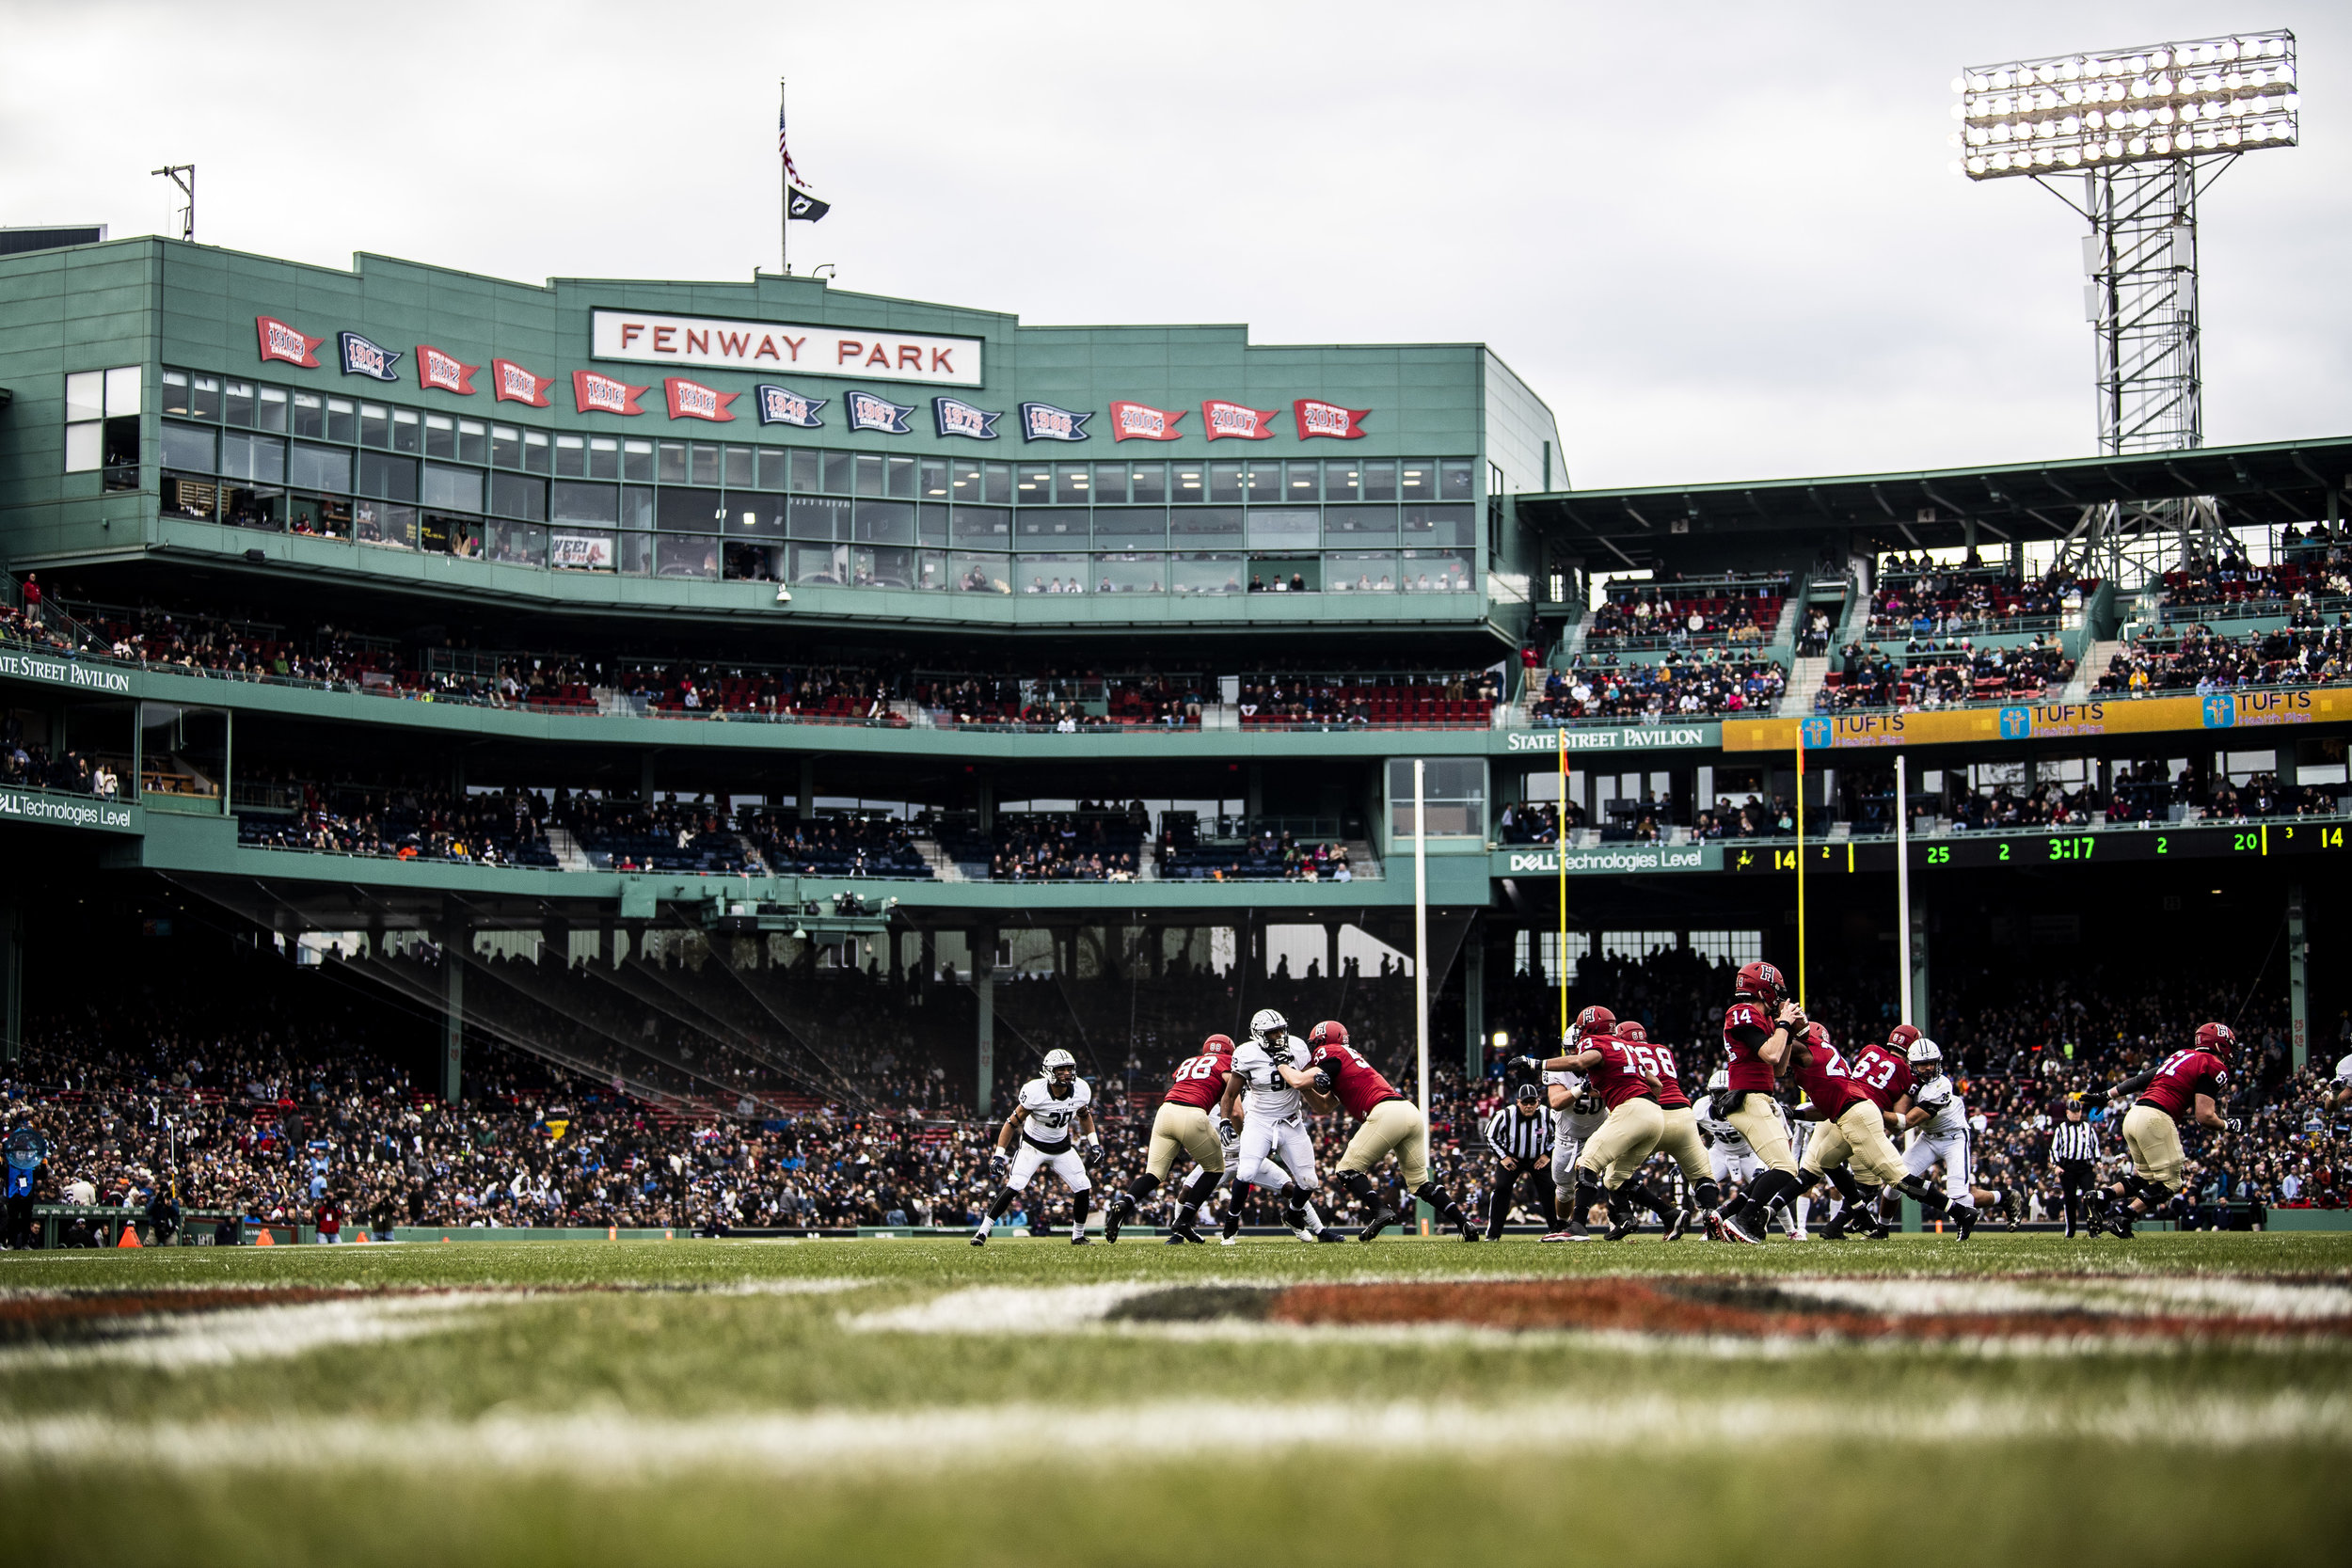 November 16, 2018, Boston, MA: A Harvard Player makes a throw during the Harvard University and Yale University football Game at Fenway Park in Boston, Massachusetts on Thursday, November 16, 2018. (Photo by Matthew Thomas/Boston Red Sox)